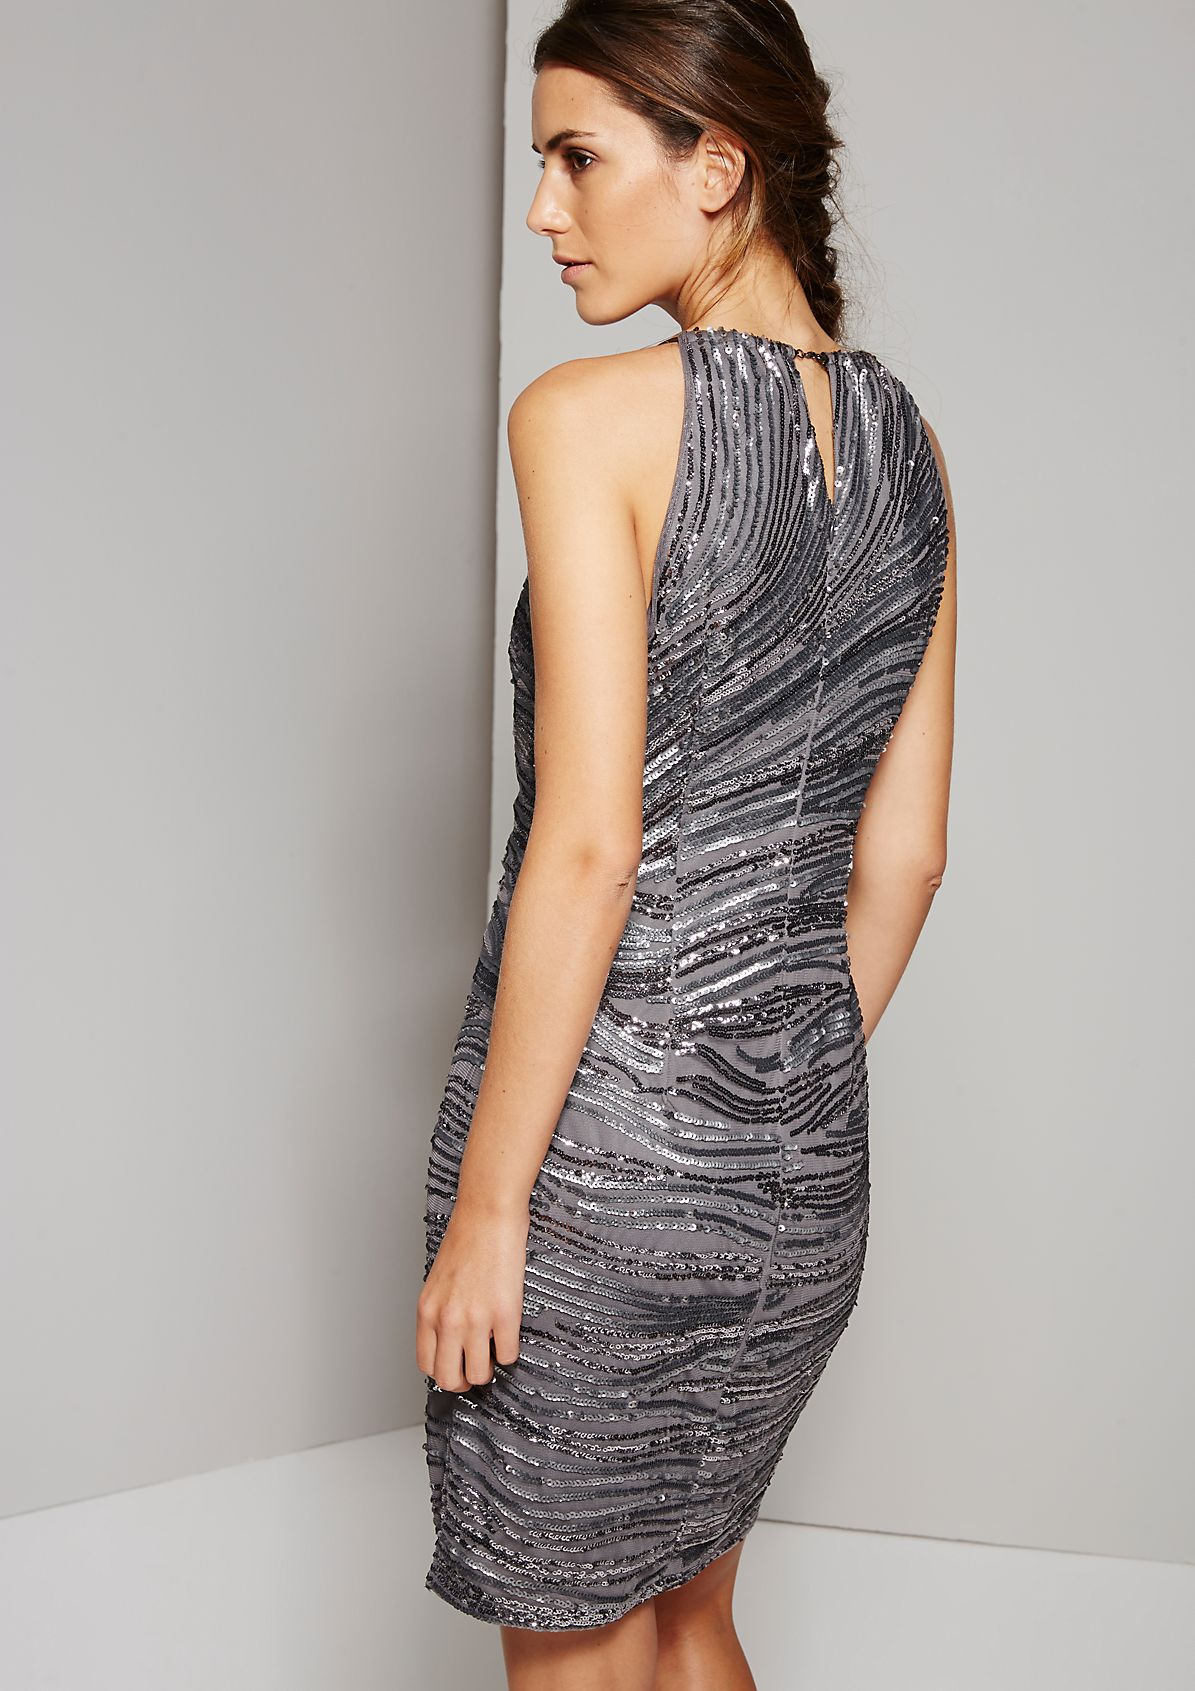 Extravagant evening dress with sparkling sequins from s.Oliver